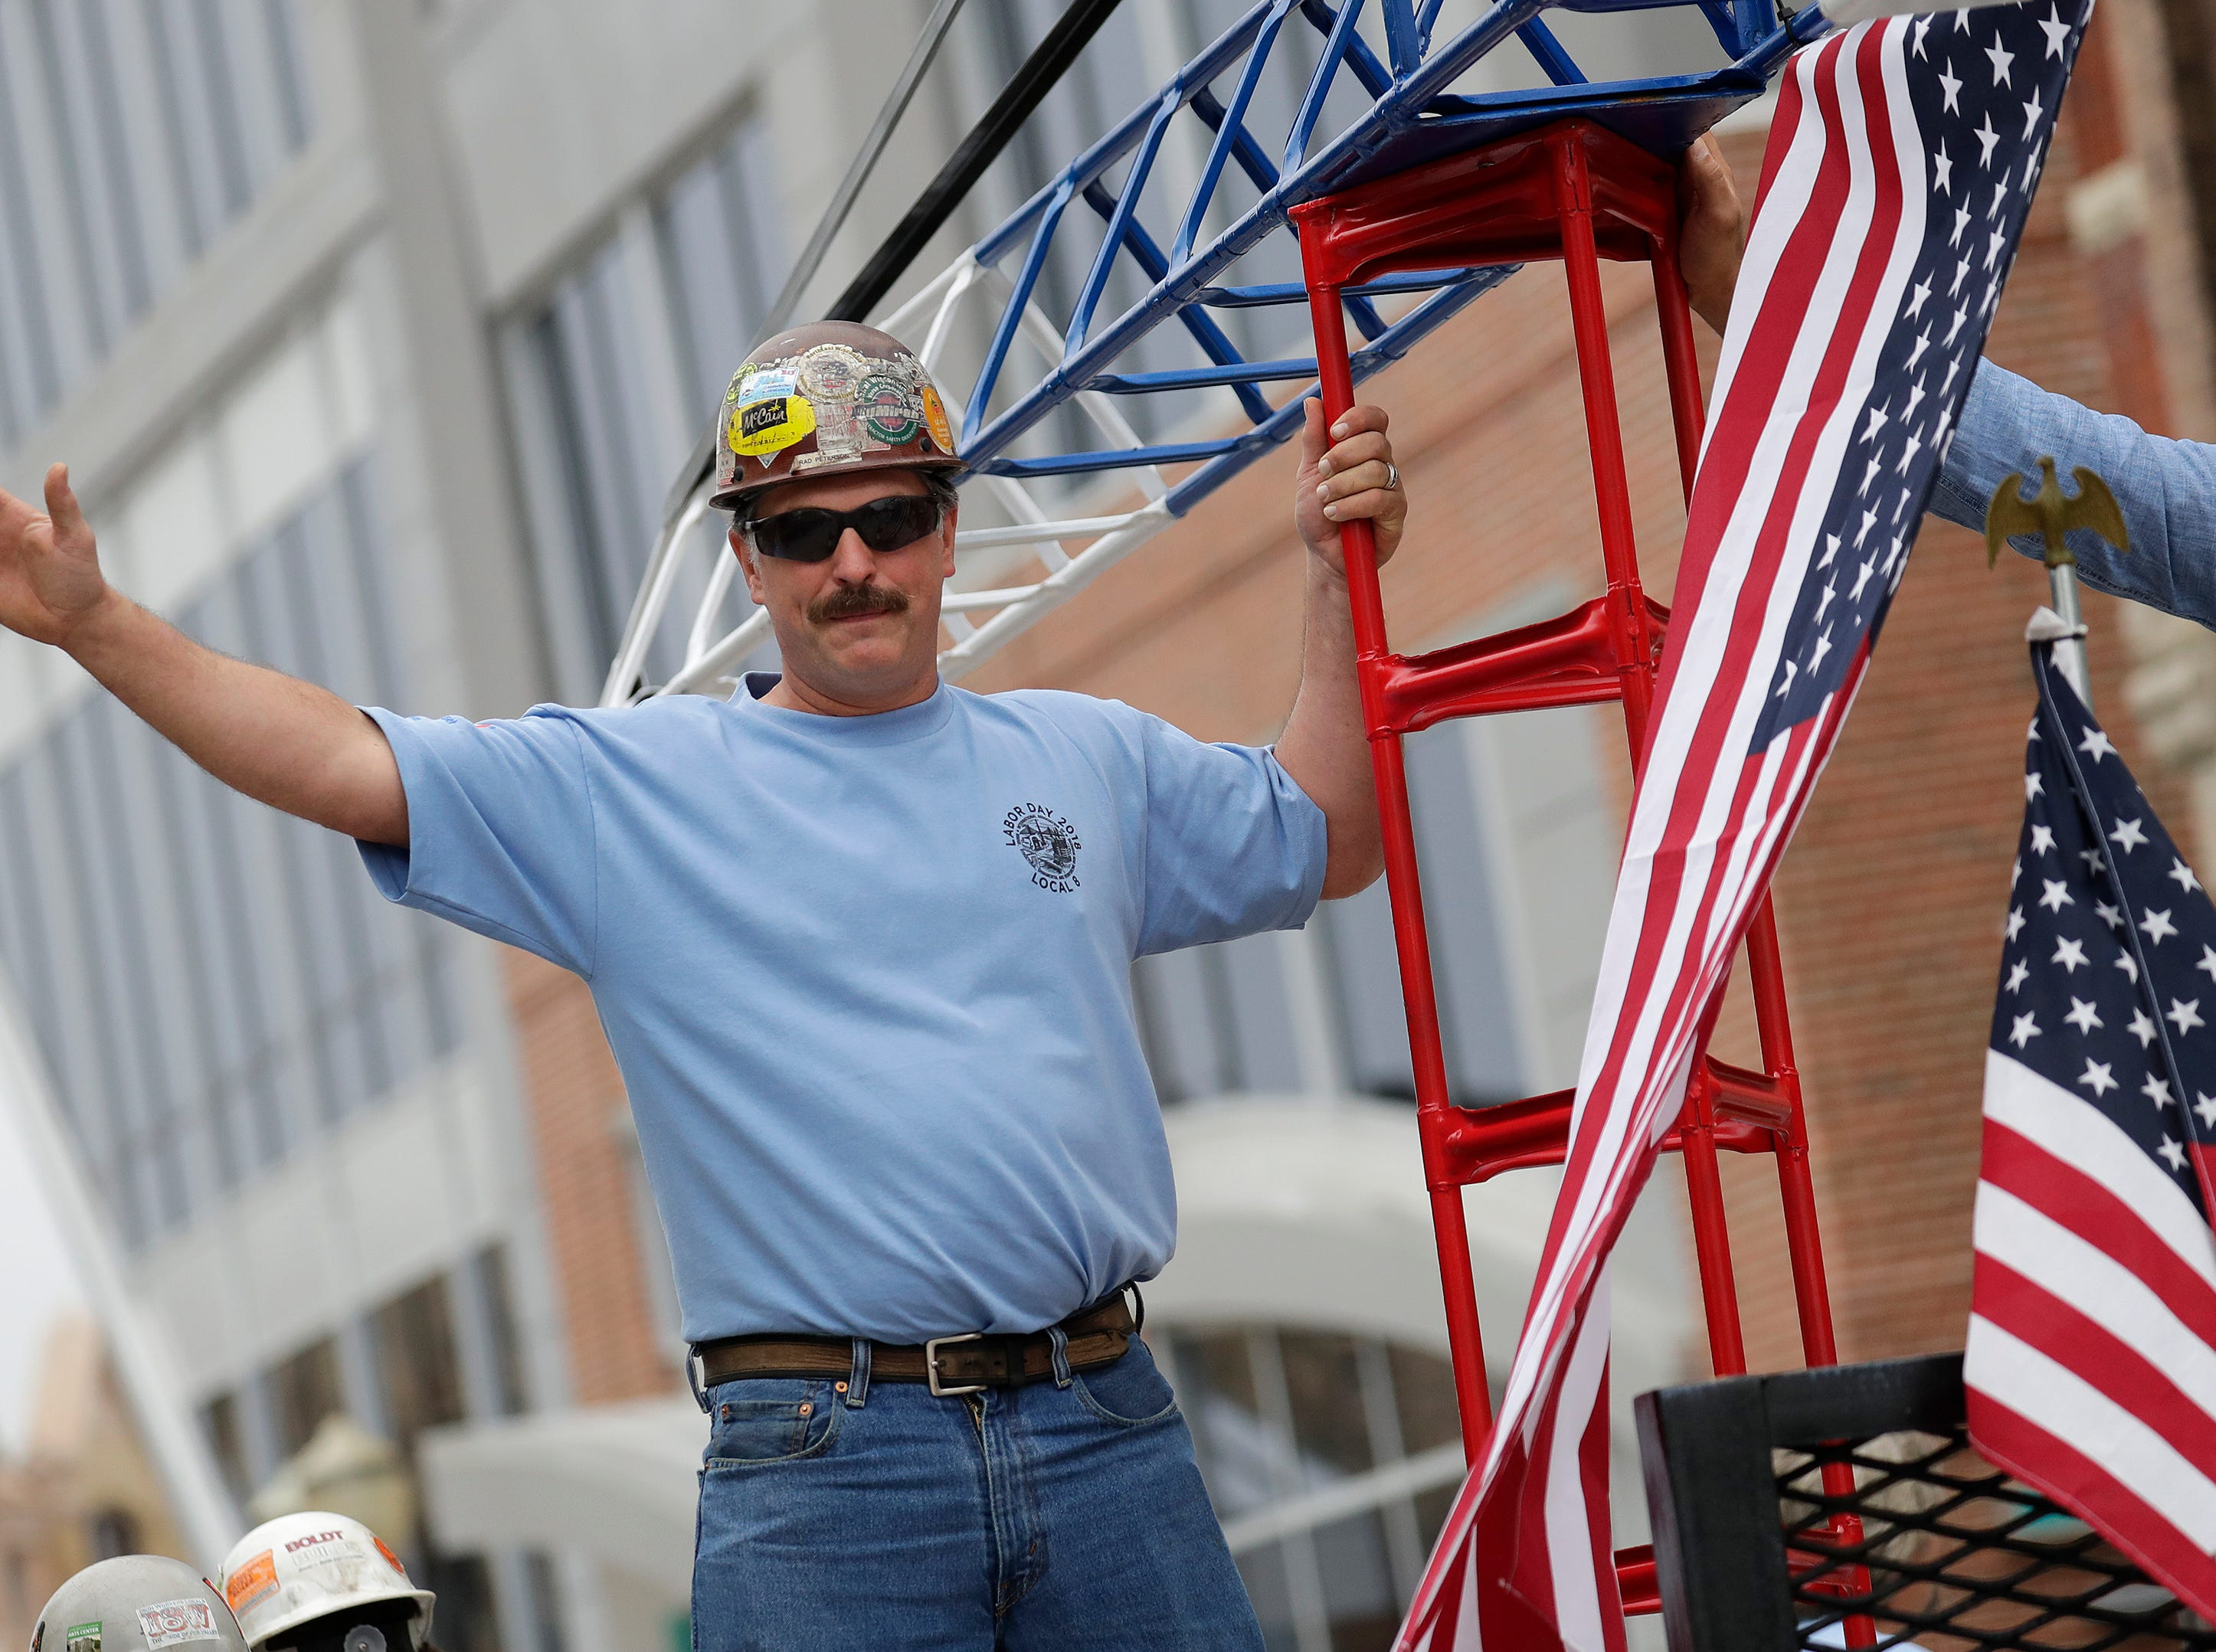 Brad Peterson Sr. of New London, a member of Ironworkers Local 8, waves to attendees during the Neenah-Menasha Labor Day Parade Monday, Sept. 3, 2018, in downtown Menasha, Wis. 